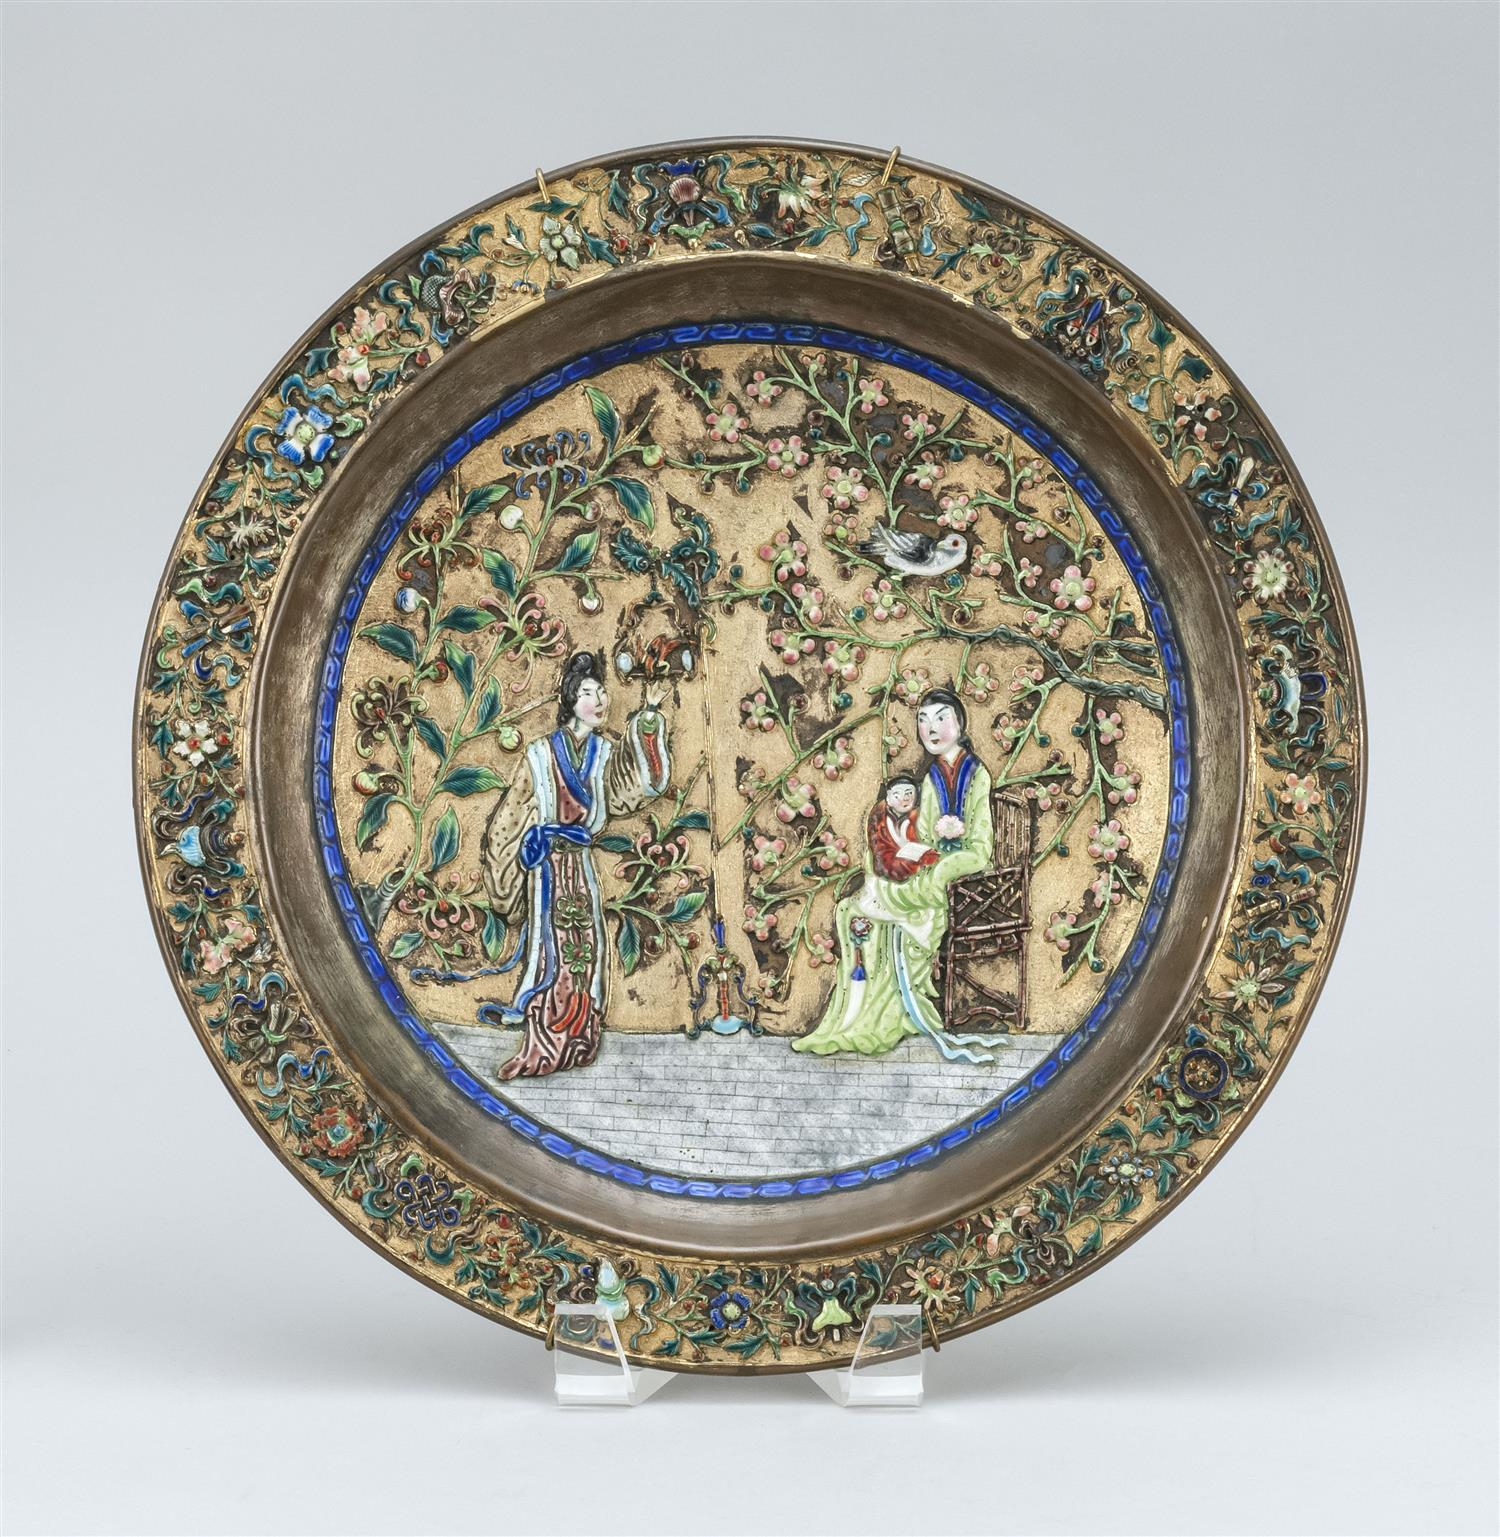 """CHINESE ENAMEL-ON-COPPER PLAQUE Floral border surrounds a scene of figures in a garden. Marked """"Made in China"""" on base. Diameter 12""""."""